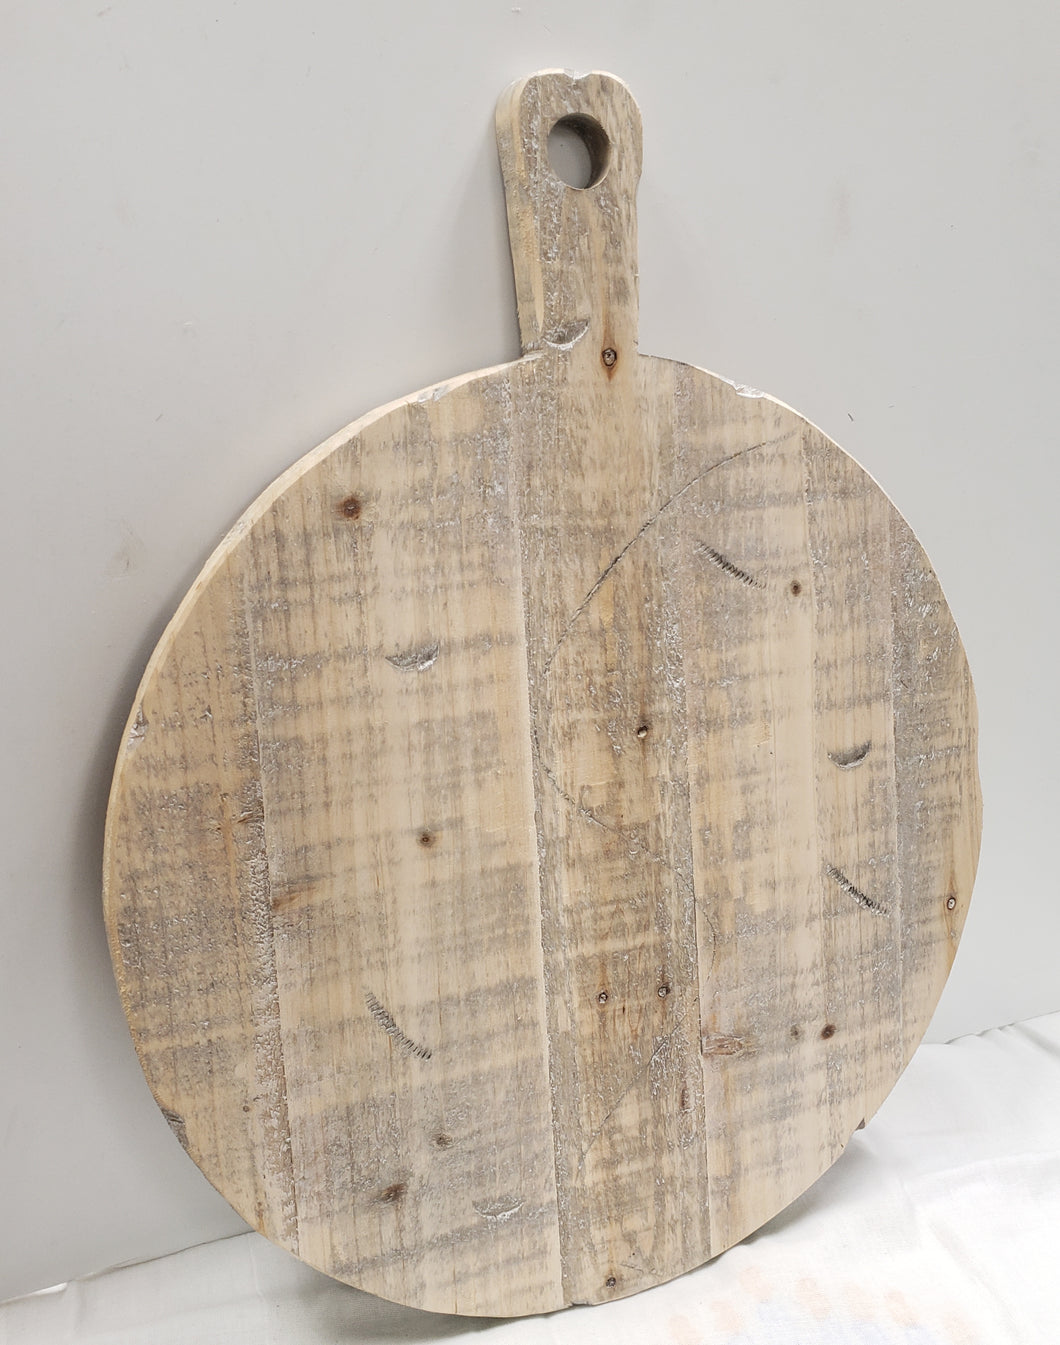 Large Round Wood Cutting Board - White Washed